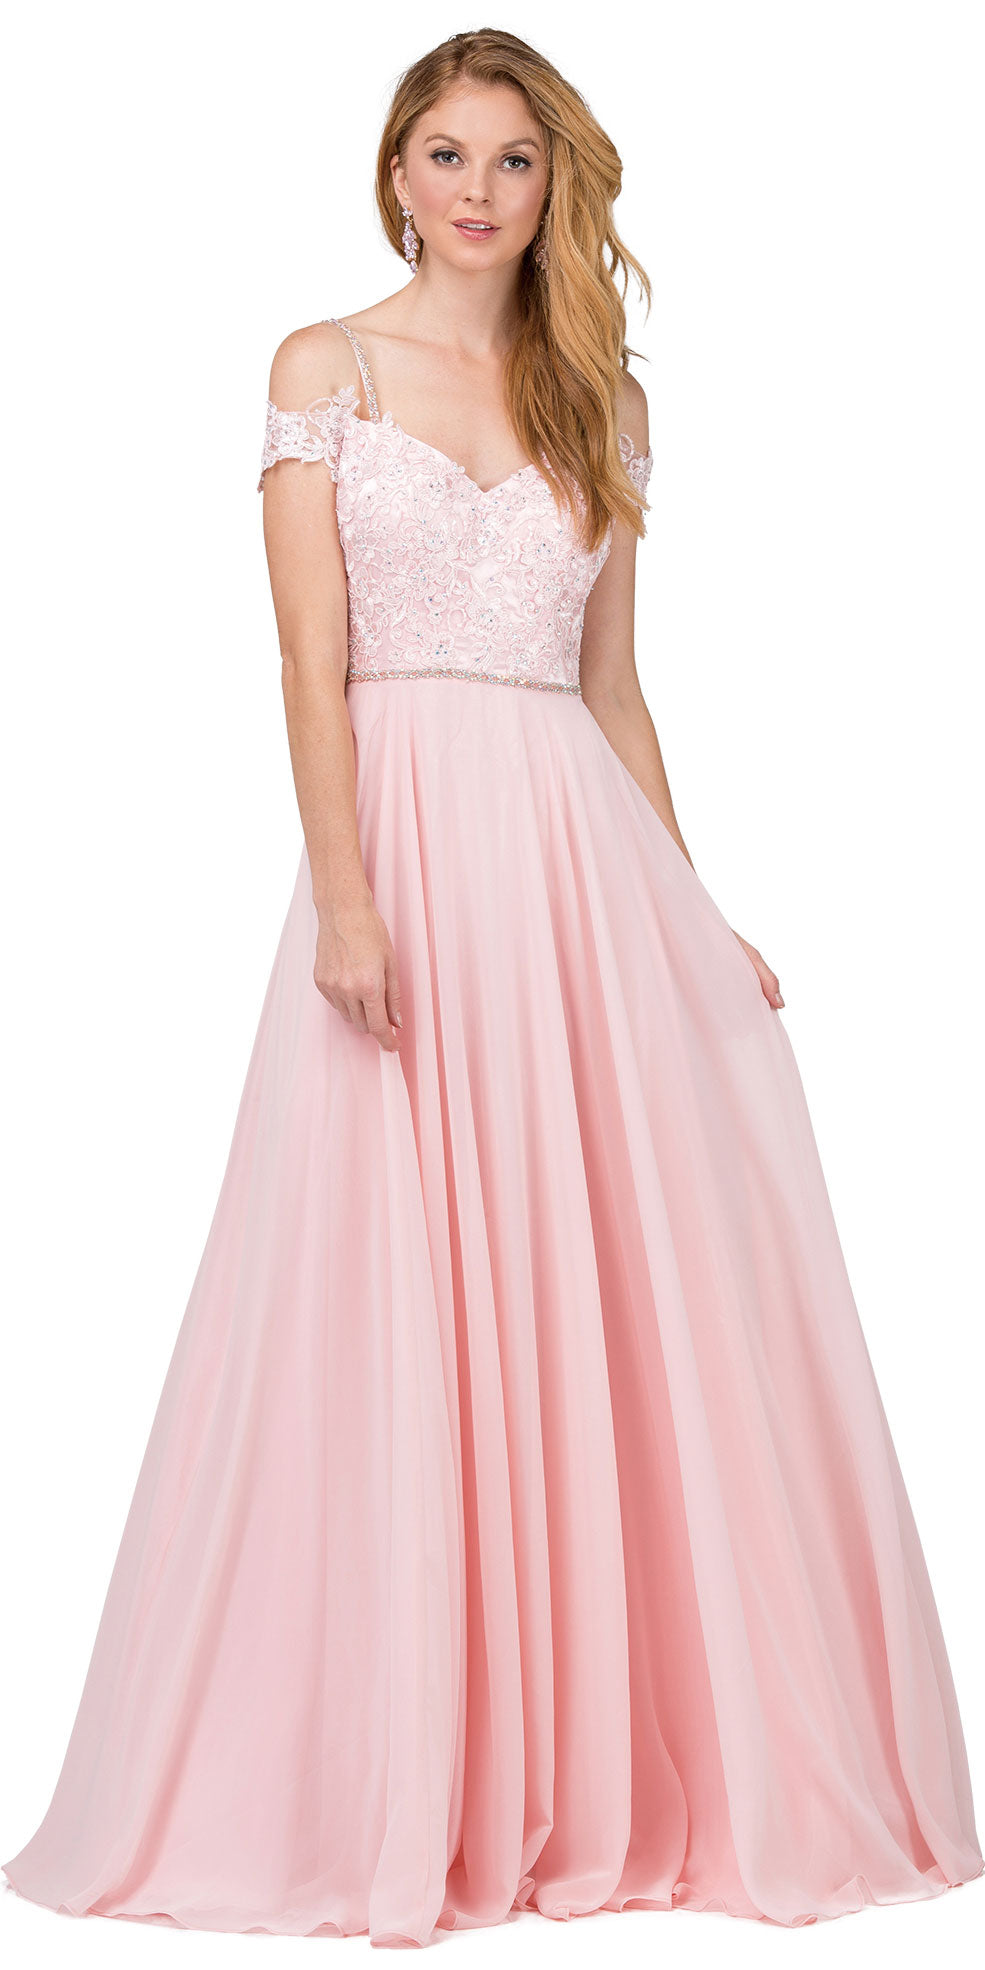 Image of Cold Shoulder Beaded Lace Bodice Long Prom Dress in Blush